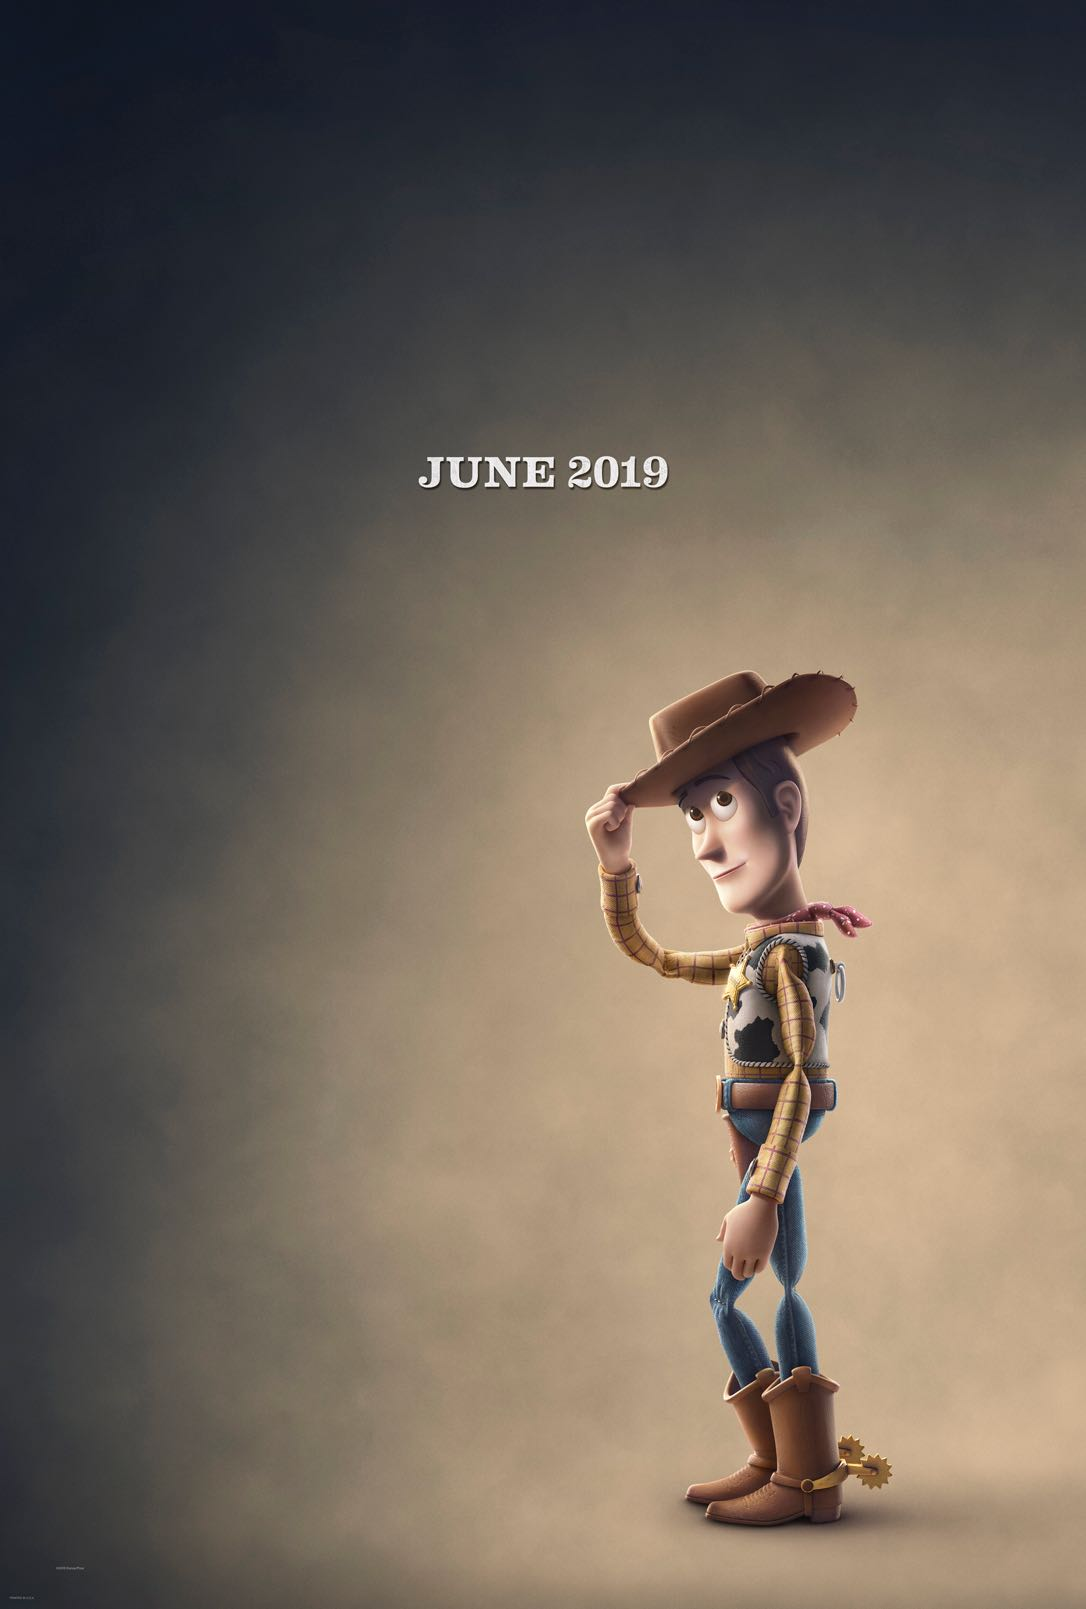 The Toy Story 4 Teaser Trailer is Here! - ComingSoon.net